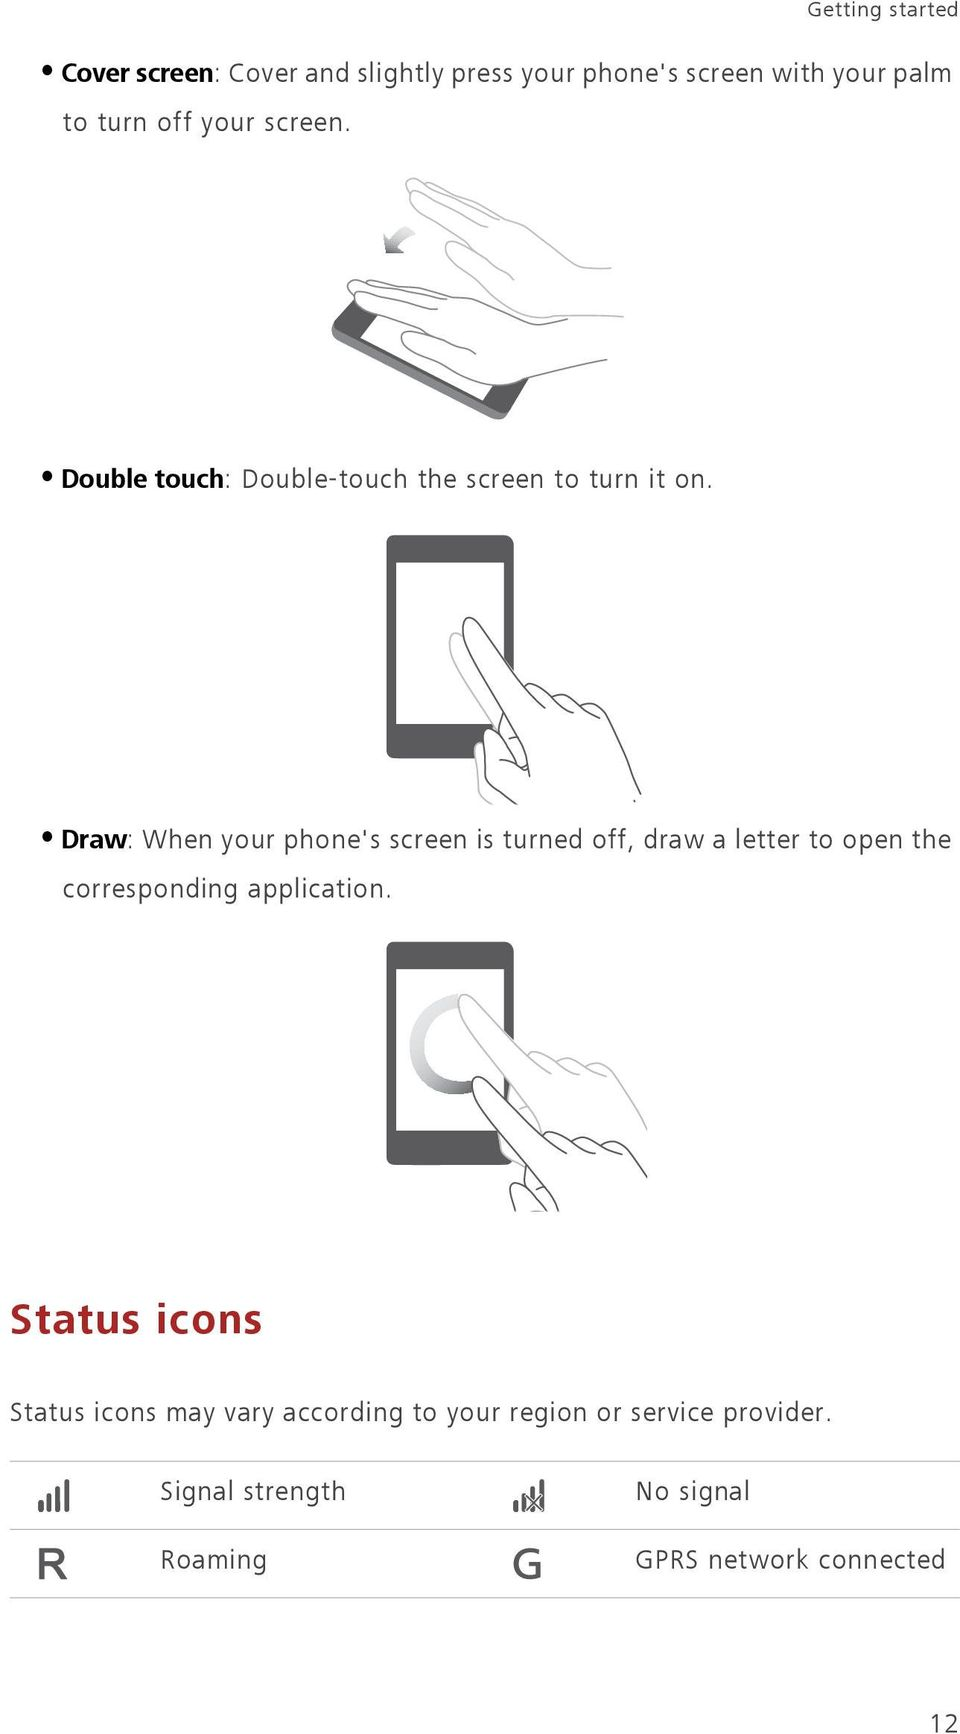 Draw: When your phone's screen is turned off, draw a letter to open the corresponding application.